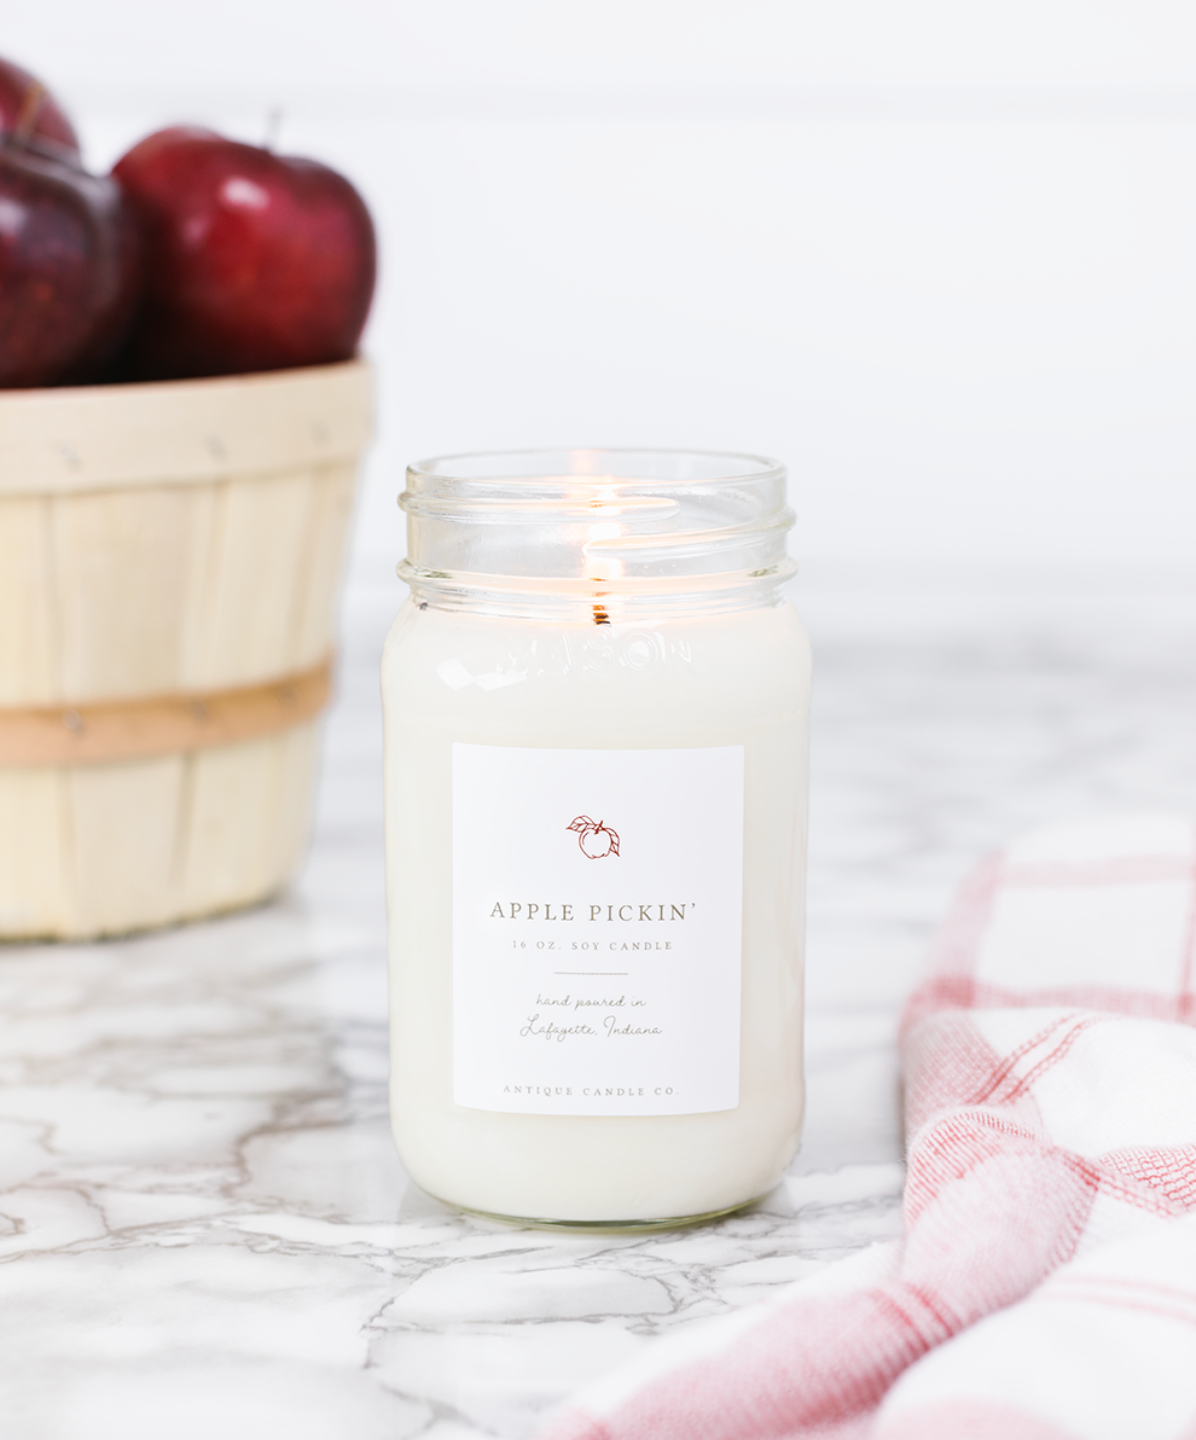 Apple Pickin' - Antique Candle Co.